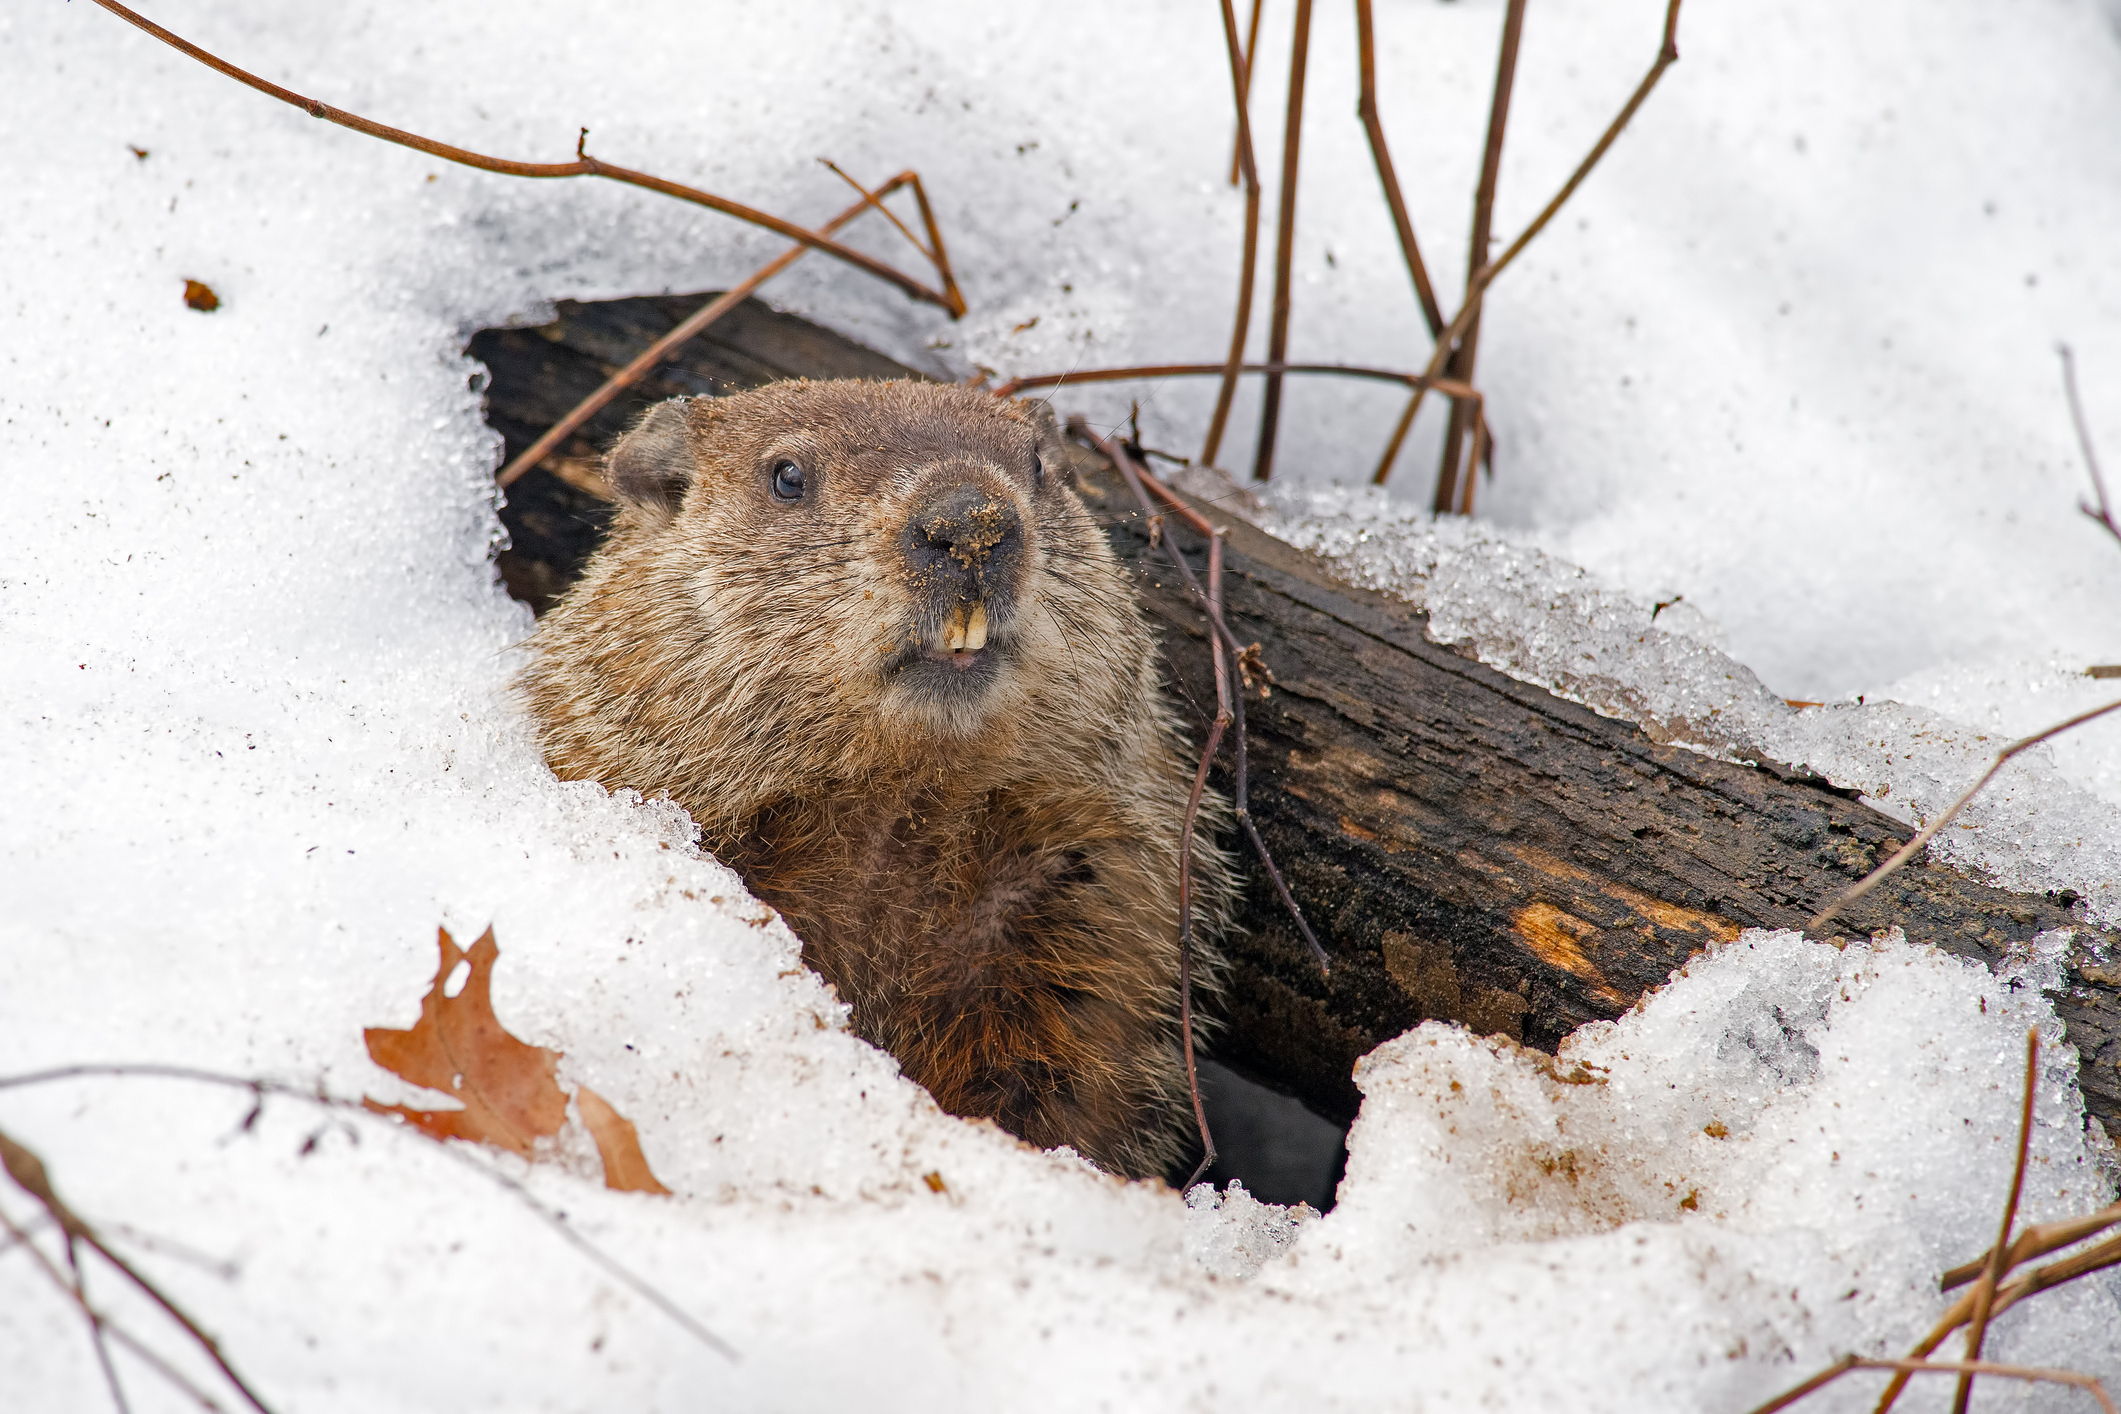 When is Groundhog Day, where does it happen, and how to people celebrate it?